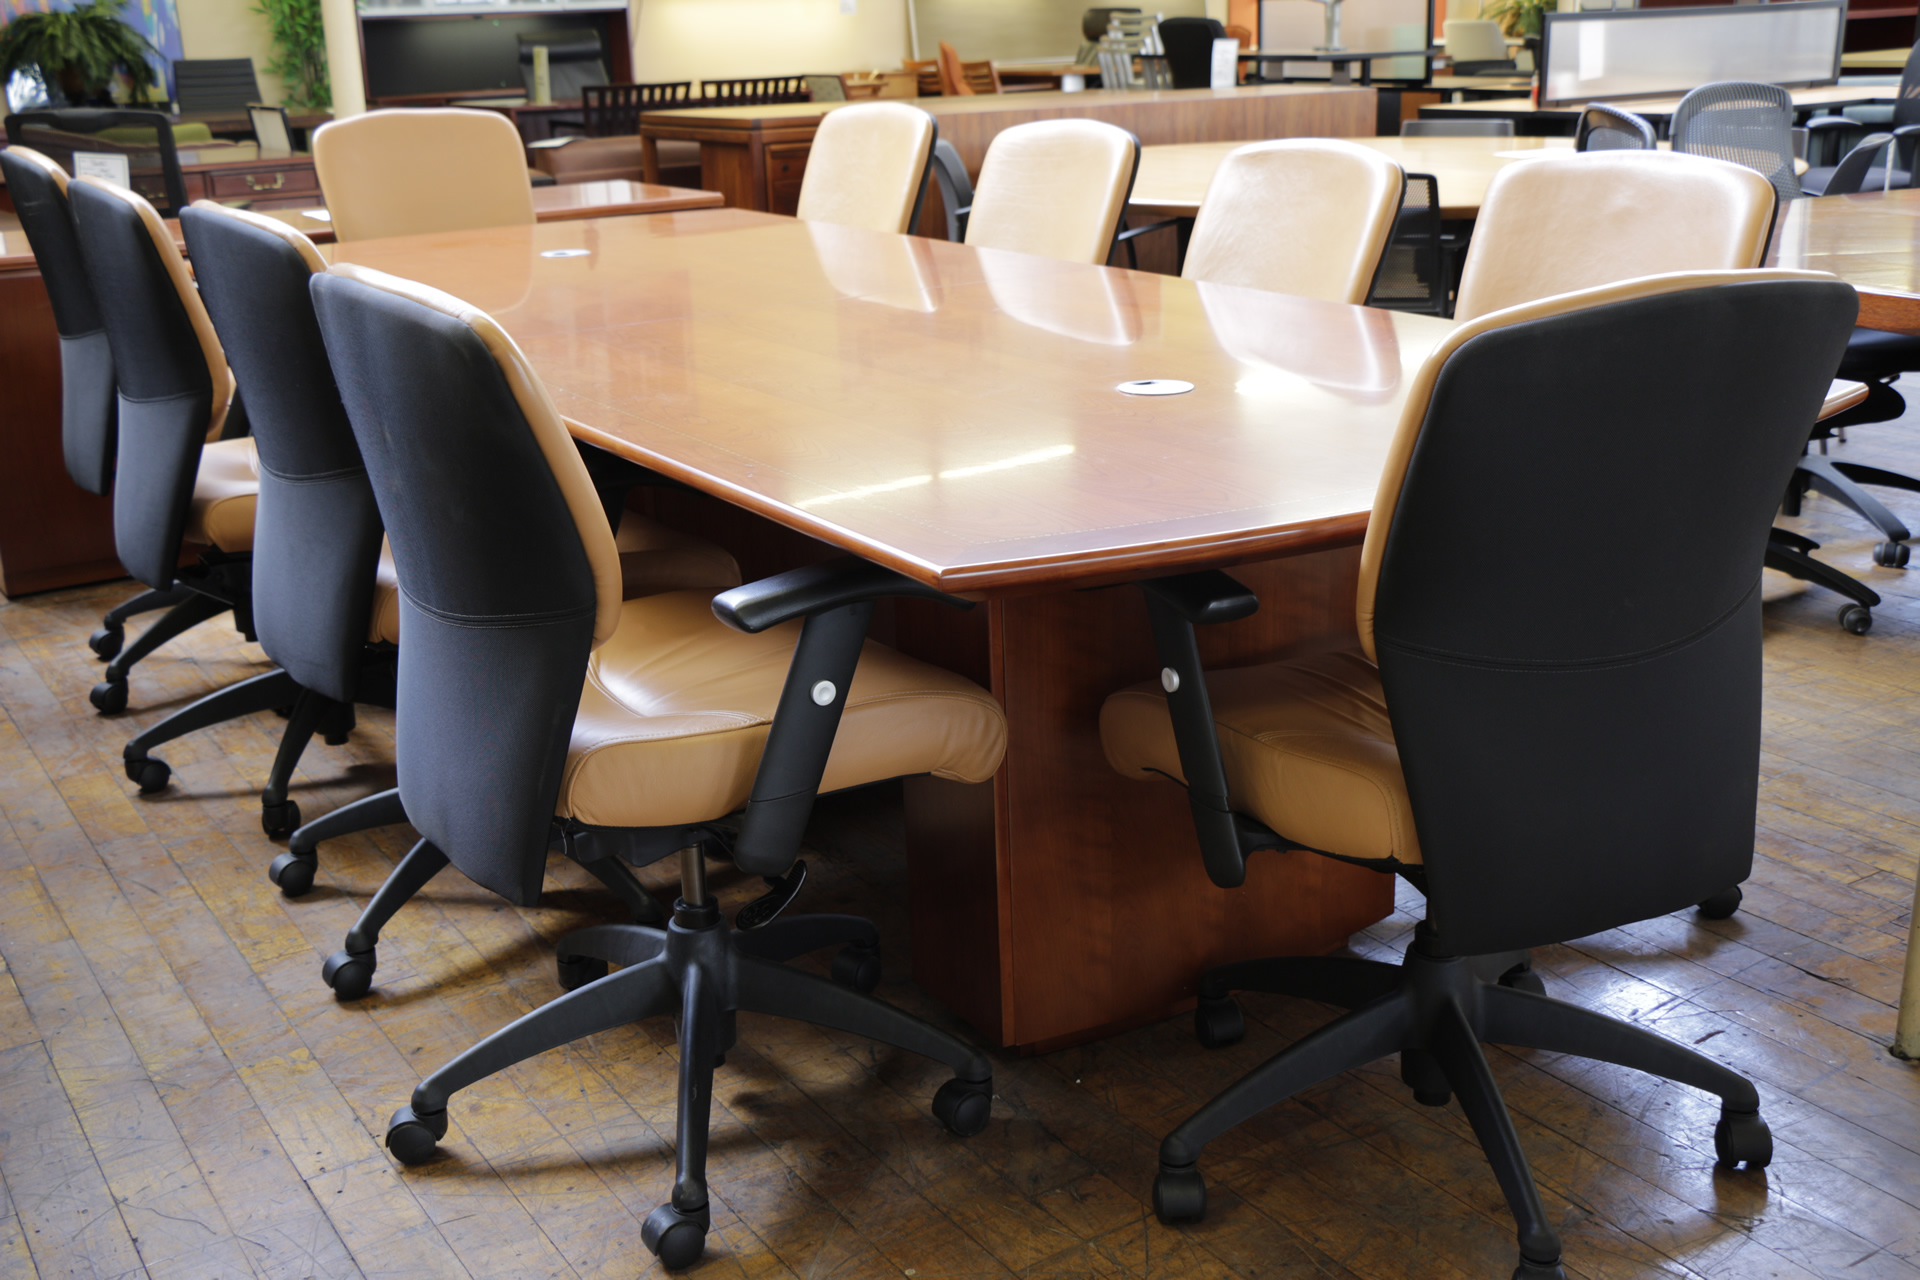 peartreeofficefurniture_peartreeofficefurniture_mg_3824.jpg